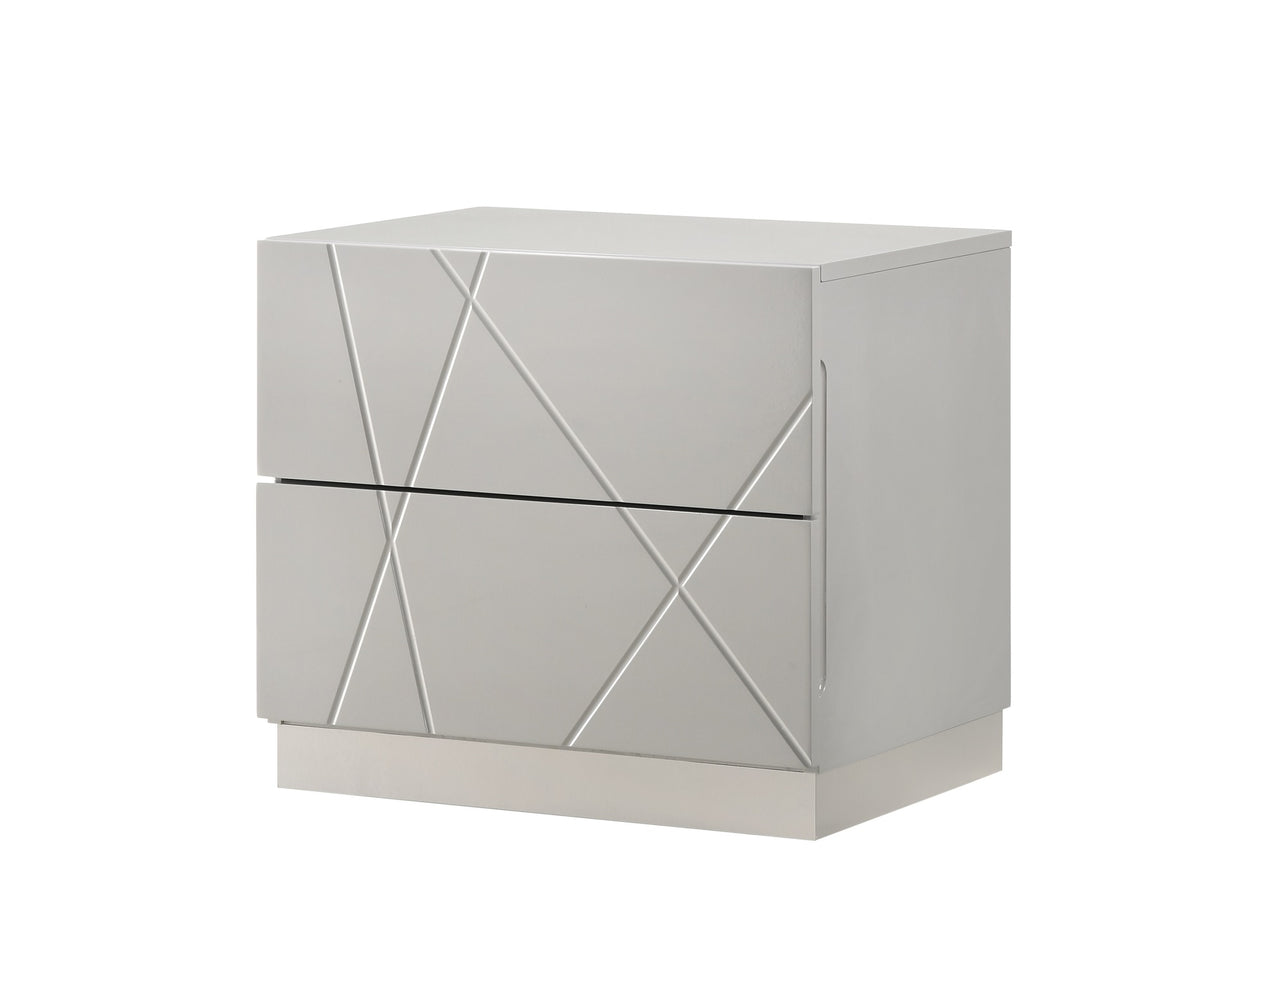 Norman Nightstand in Grey